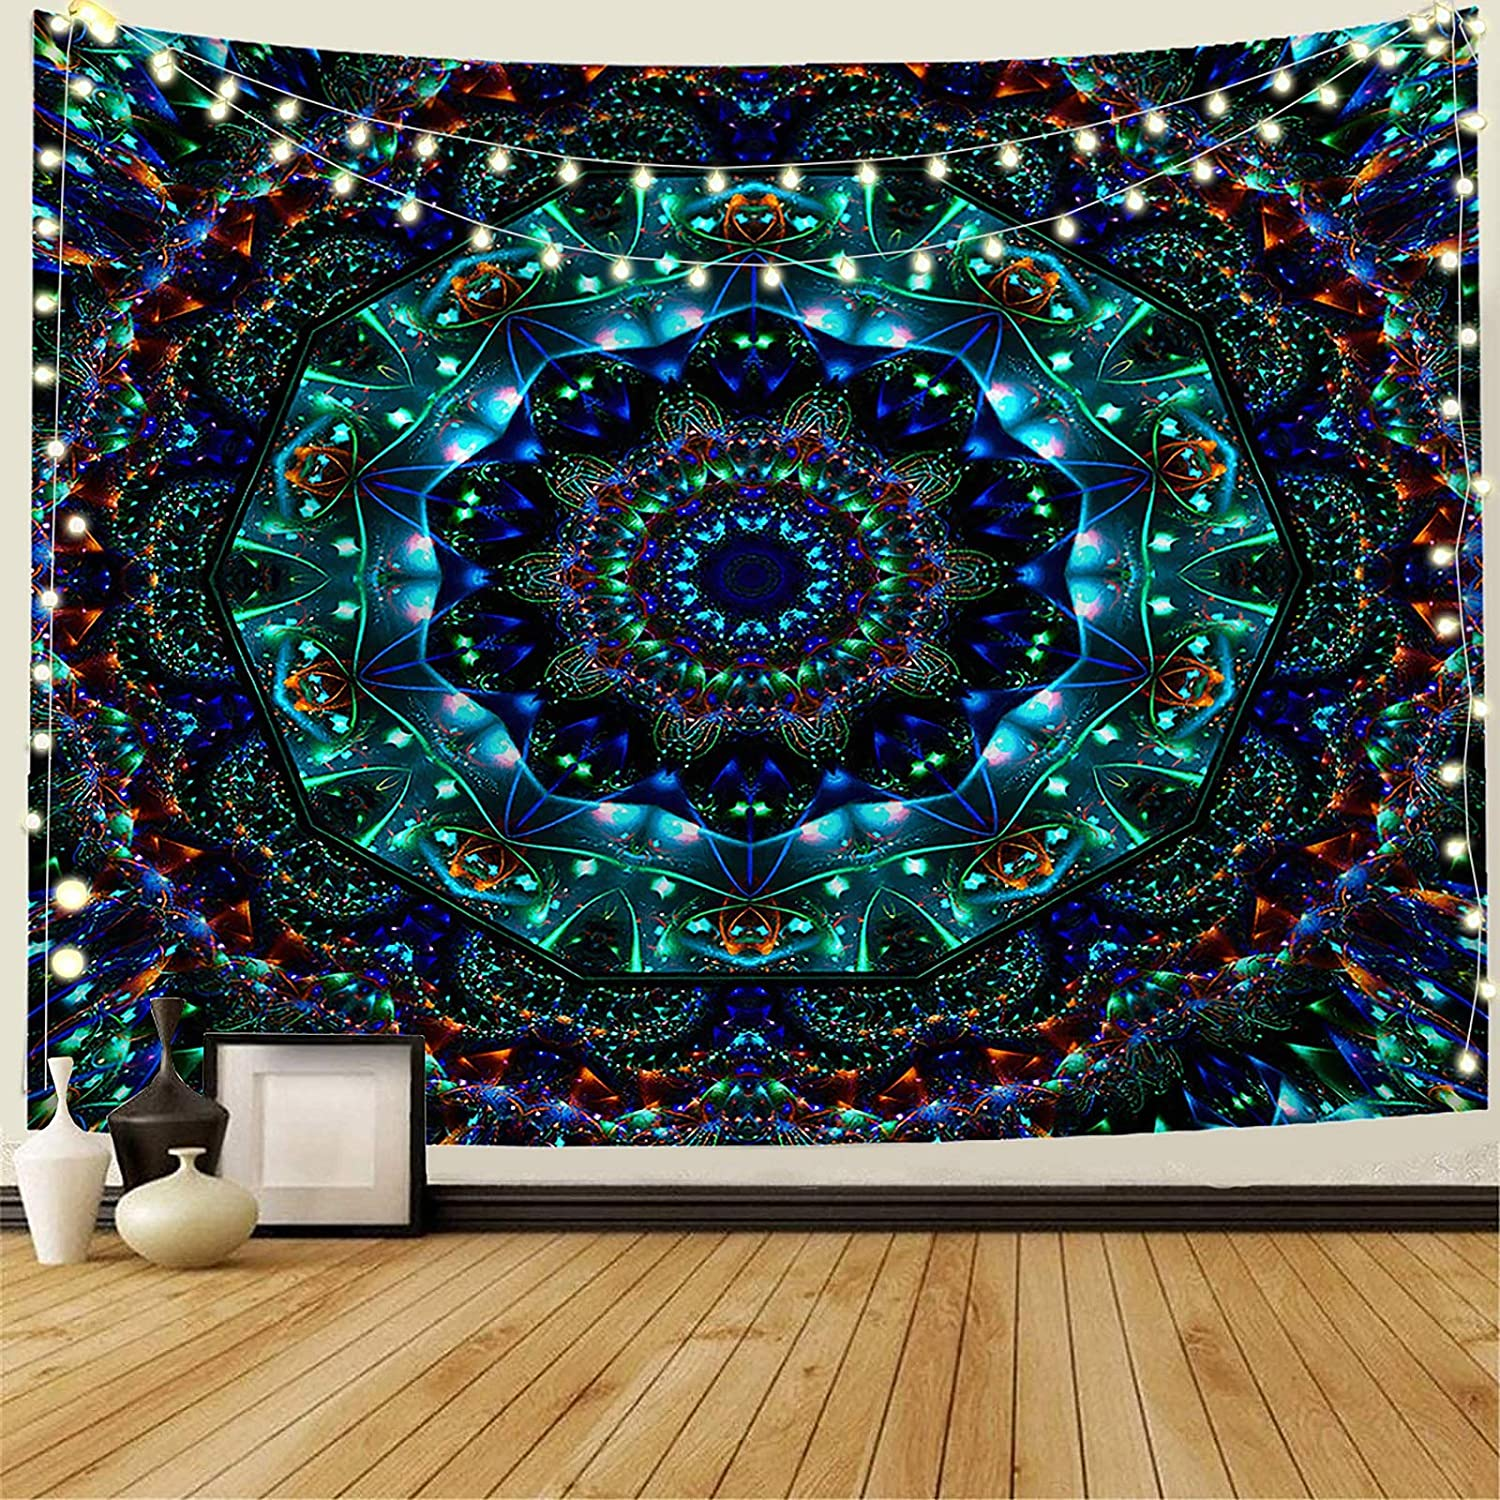 "INTHouse Trippy Mandala Tapestry Wall Hanging Hippie Bohemian Tapestry Emerald Tapestry Indian Room Decor for Bedroom Dorm Room Living Room (59""x78"")"